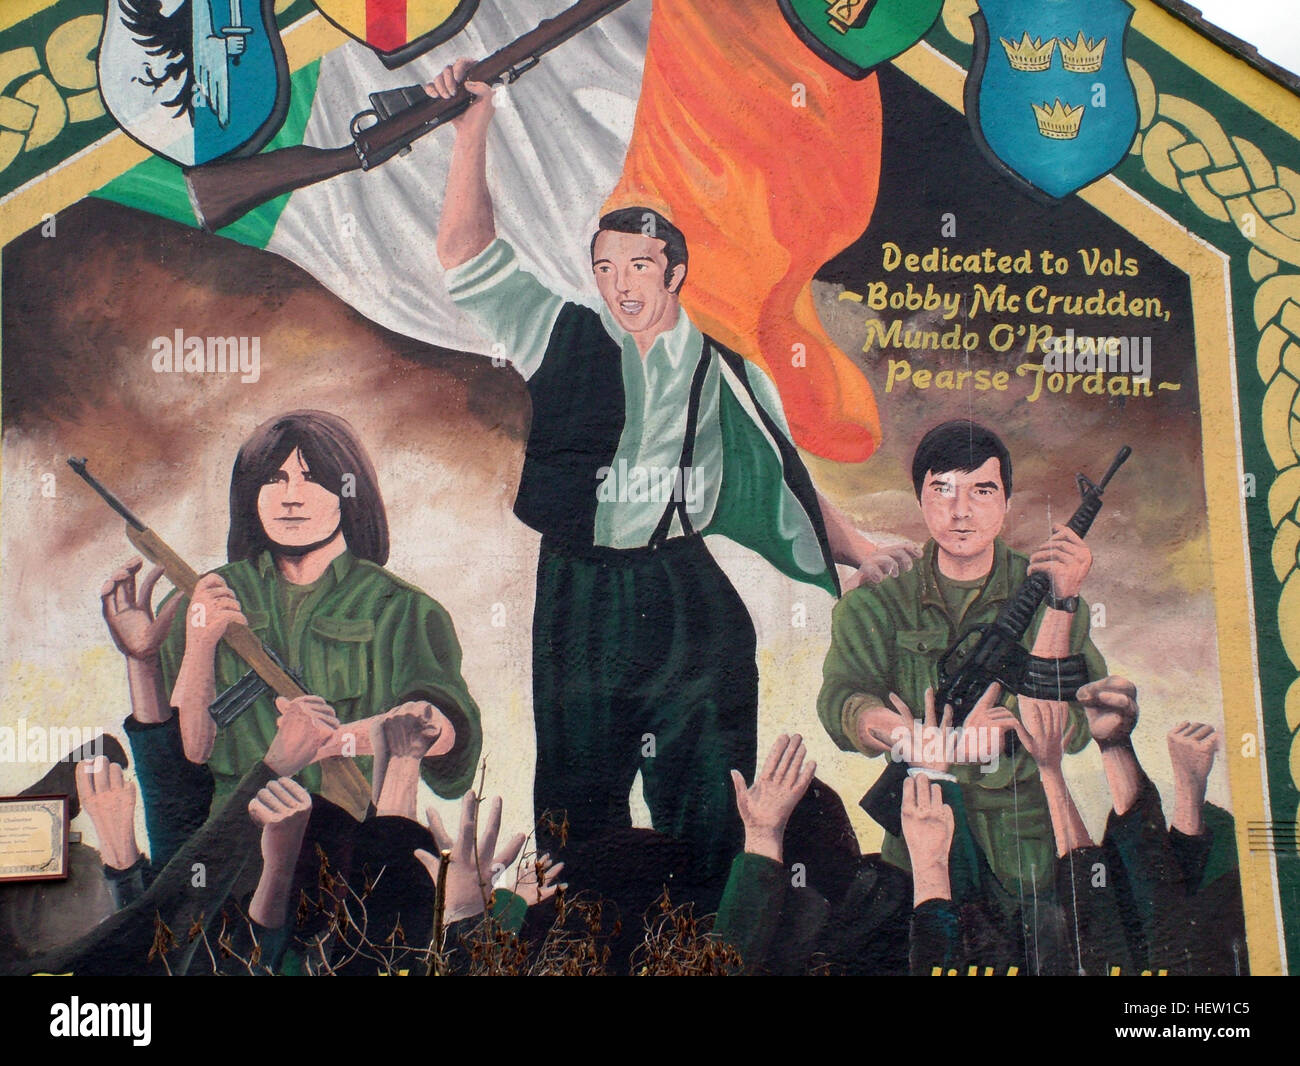 Belfast Falls Rd Republican Mural on gable end. Dedicated to Bobby McCrudden, Mundo O-Rawe, Pearse Jordan - Stock Image